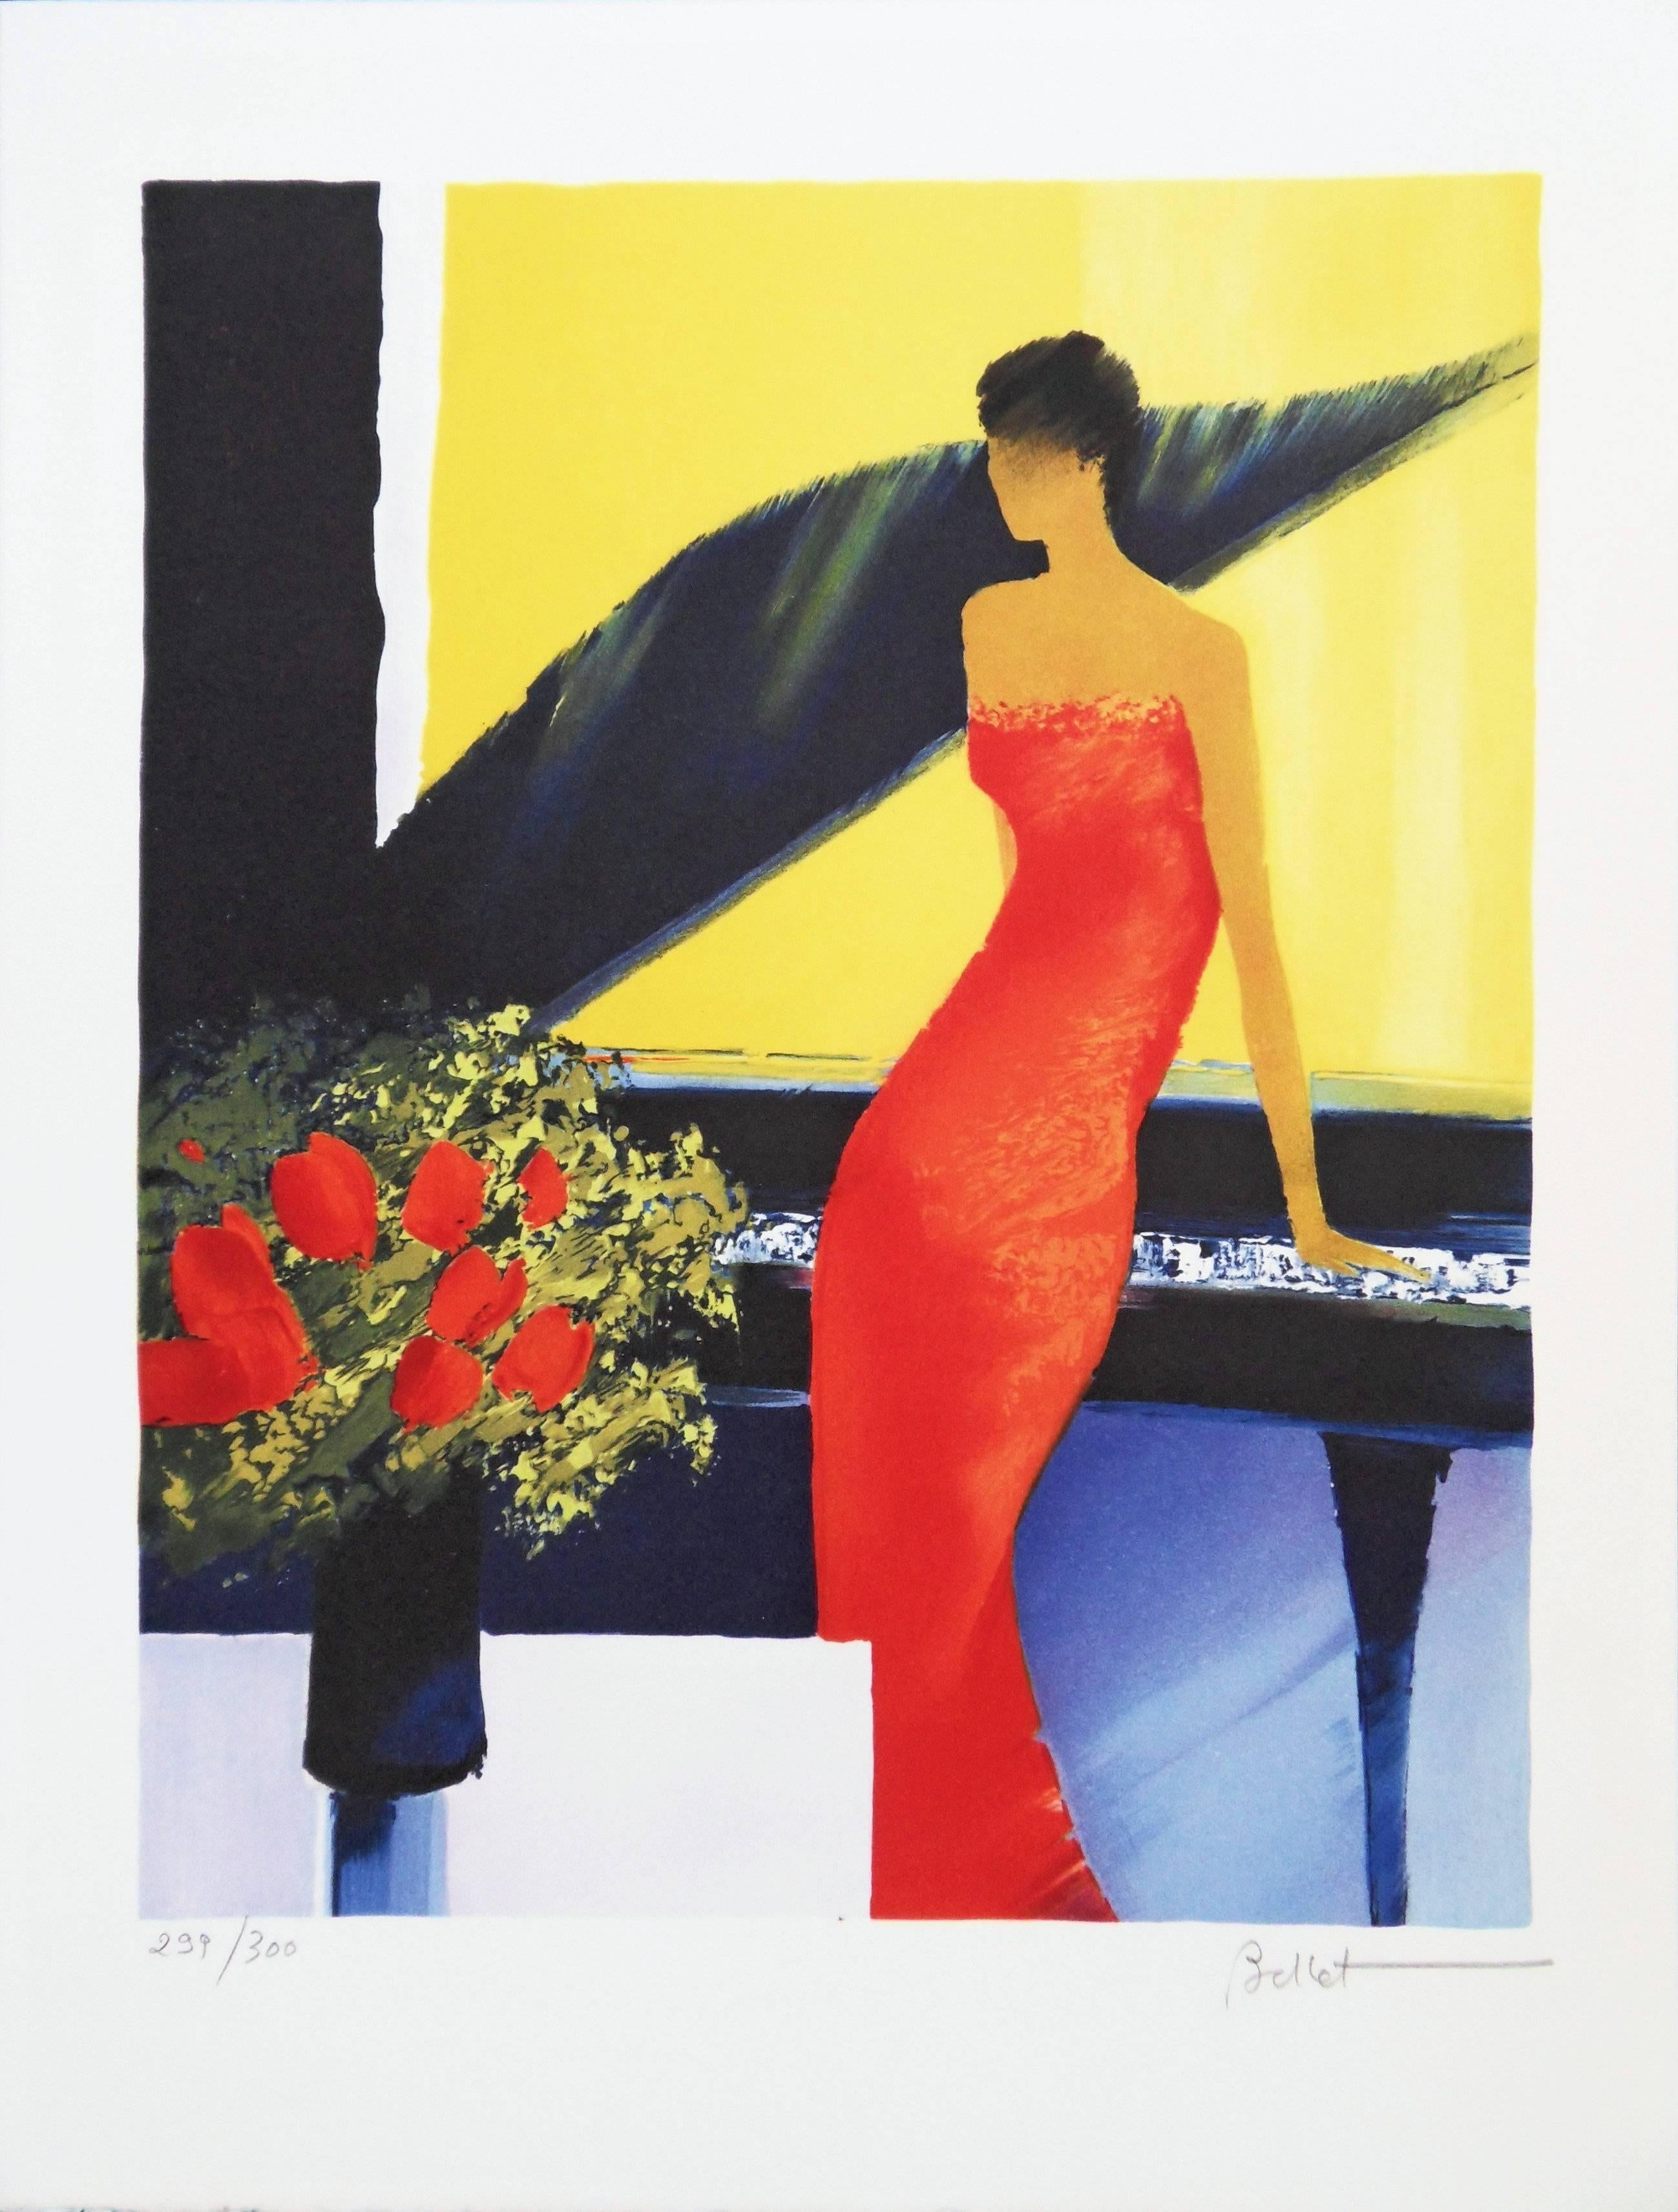 Piano Bar - Handsigned lithograph